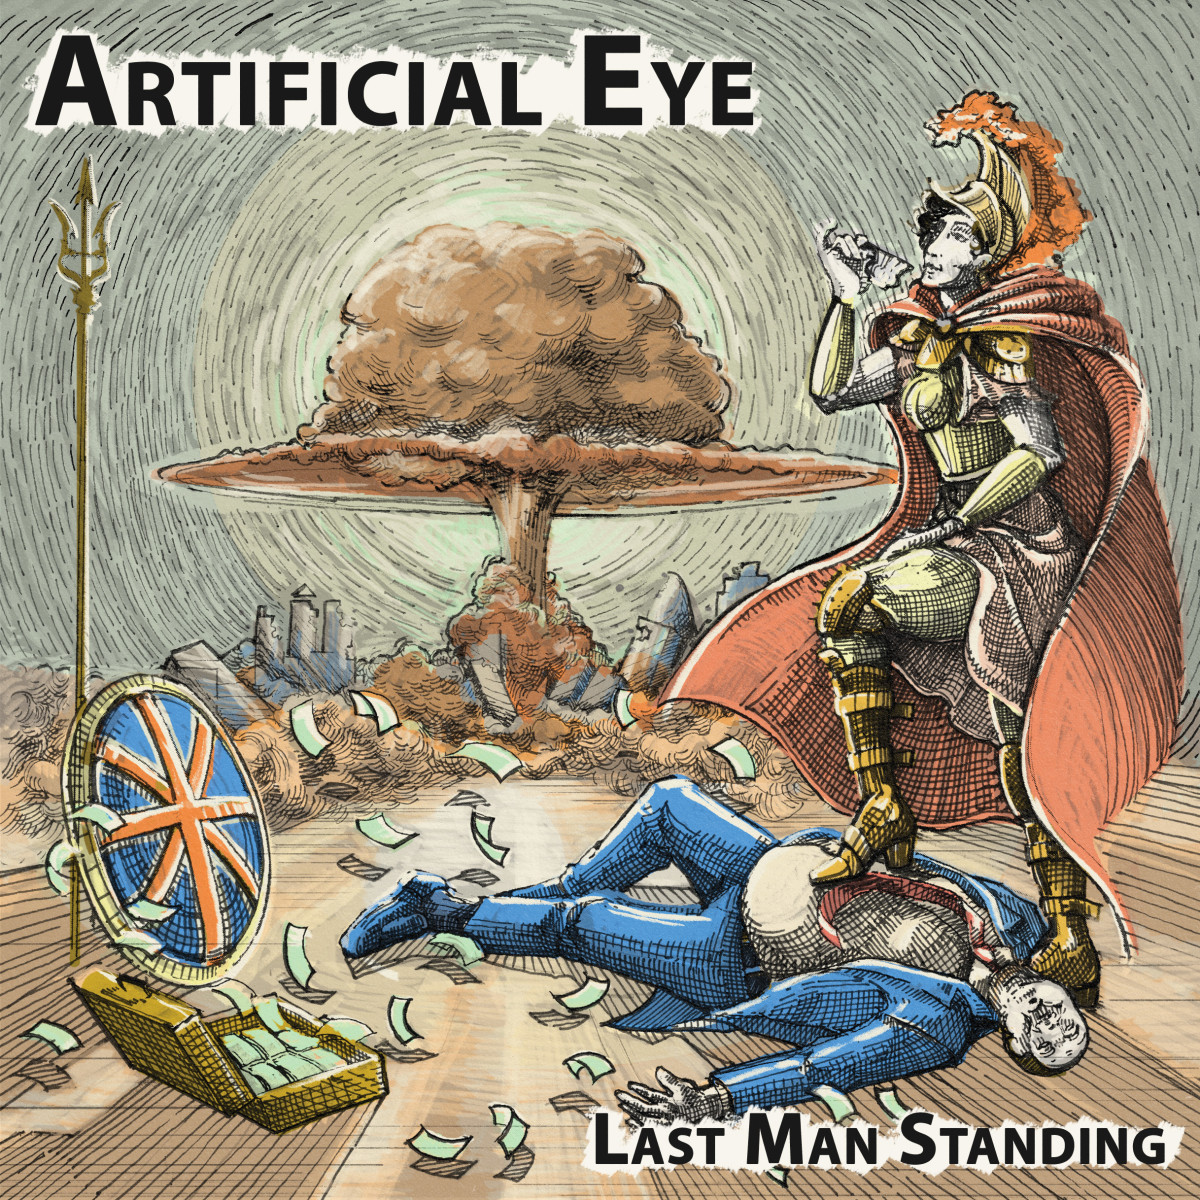 synth-album-review-last-man-standing-by-artificial-eye